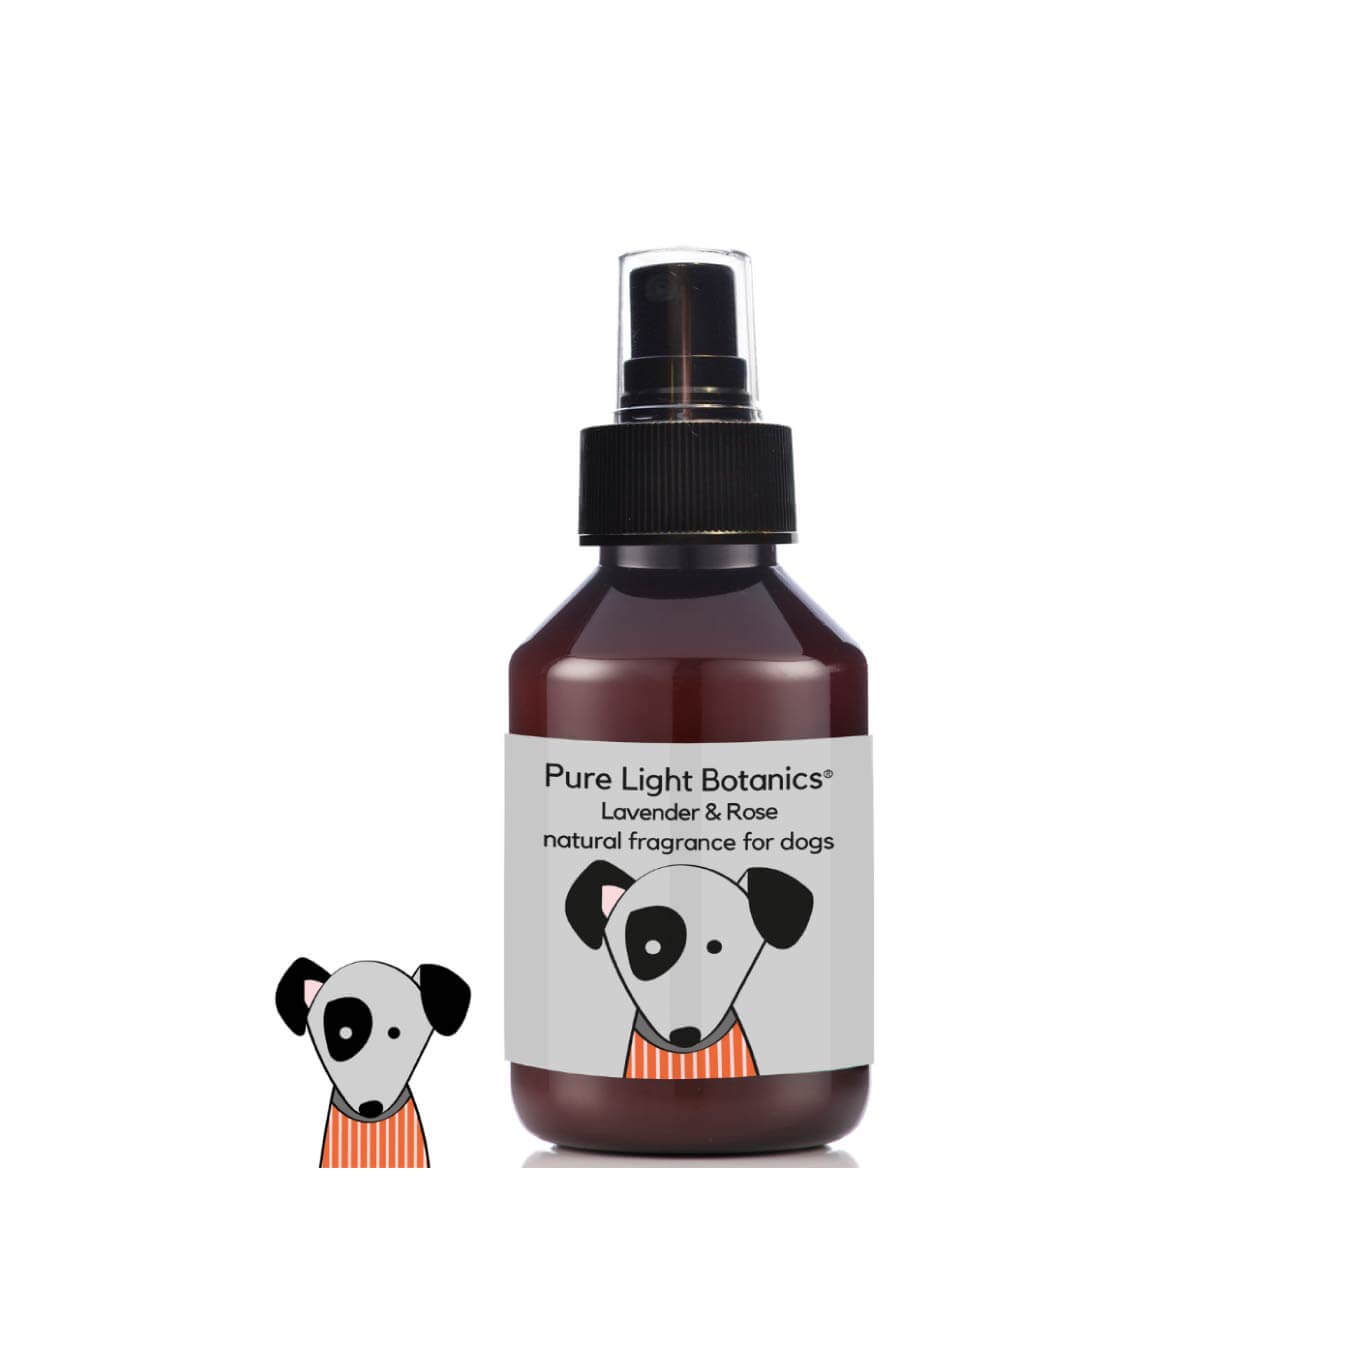 Pure Light Botanics Lavender & Rose Natural Fragrance for Dogs (100ml) - Vanillapup Online Pet Store